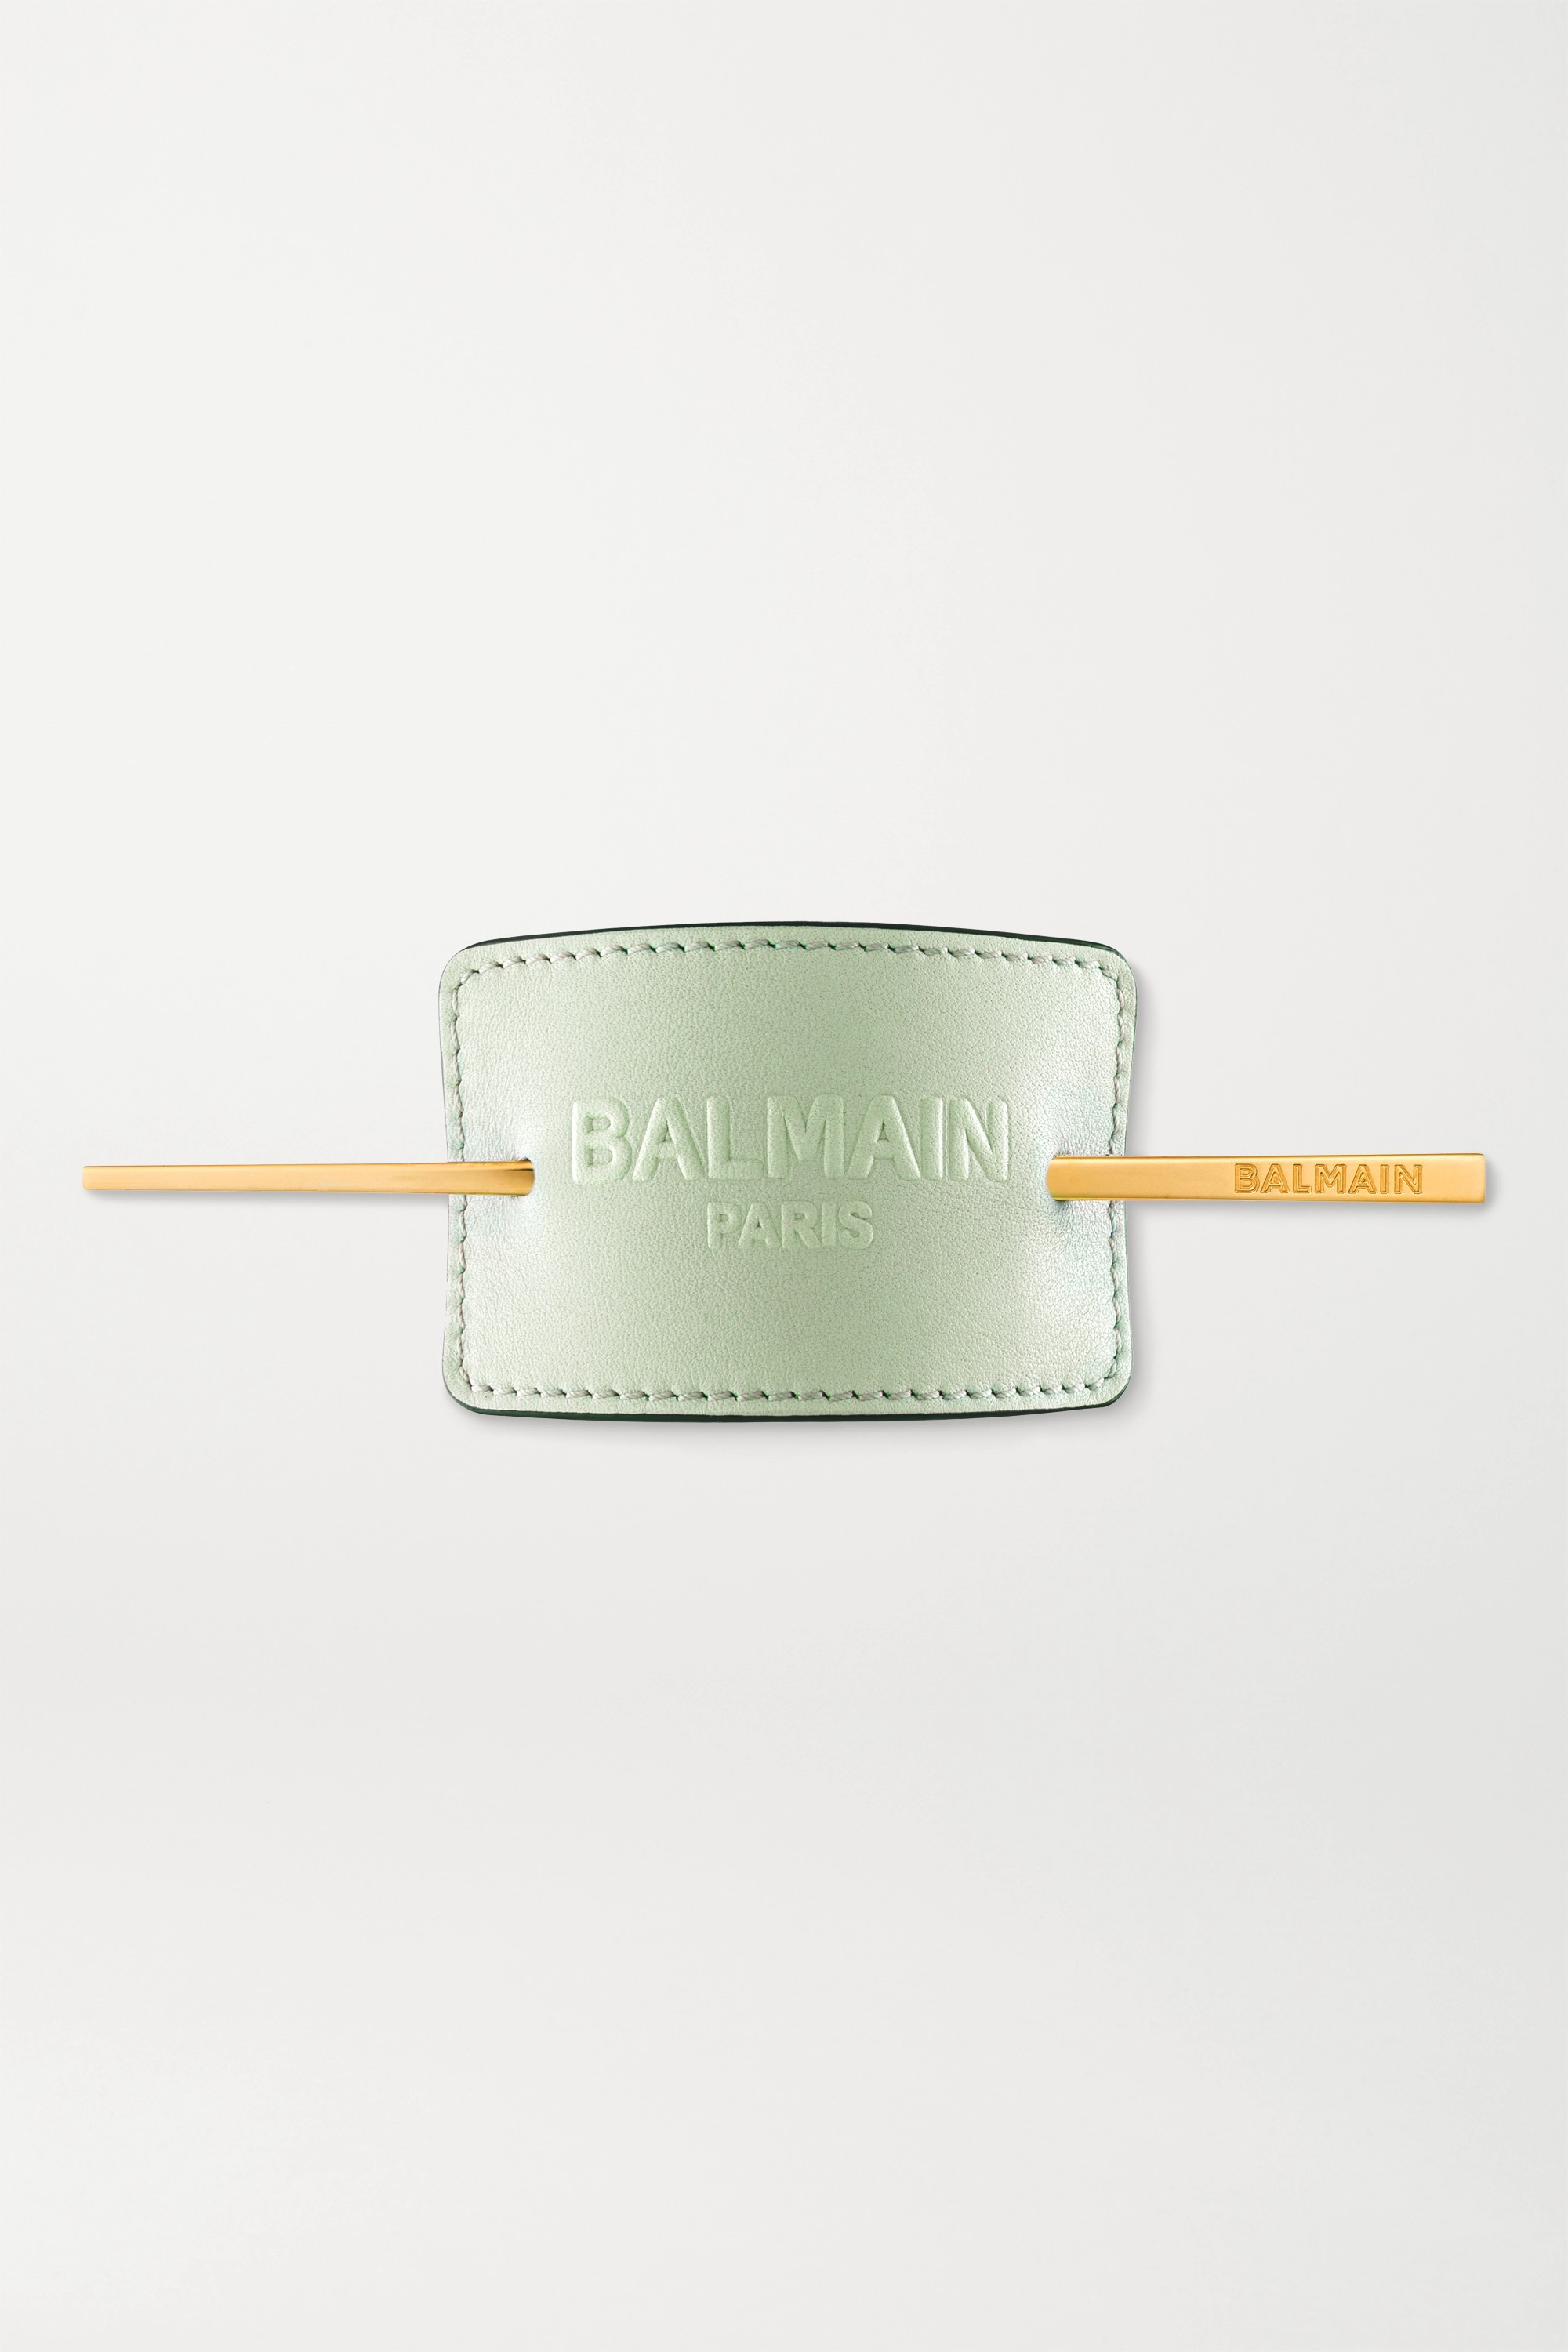 Balmain Paris Hair Couture Gold-plated and embossed leather hair pin - Mint